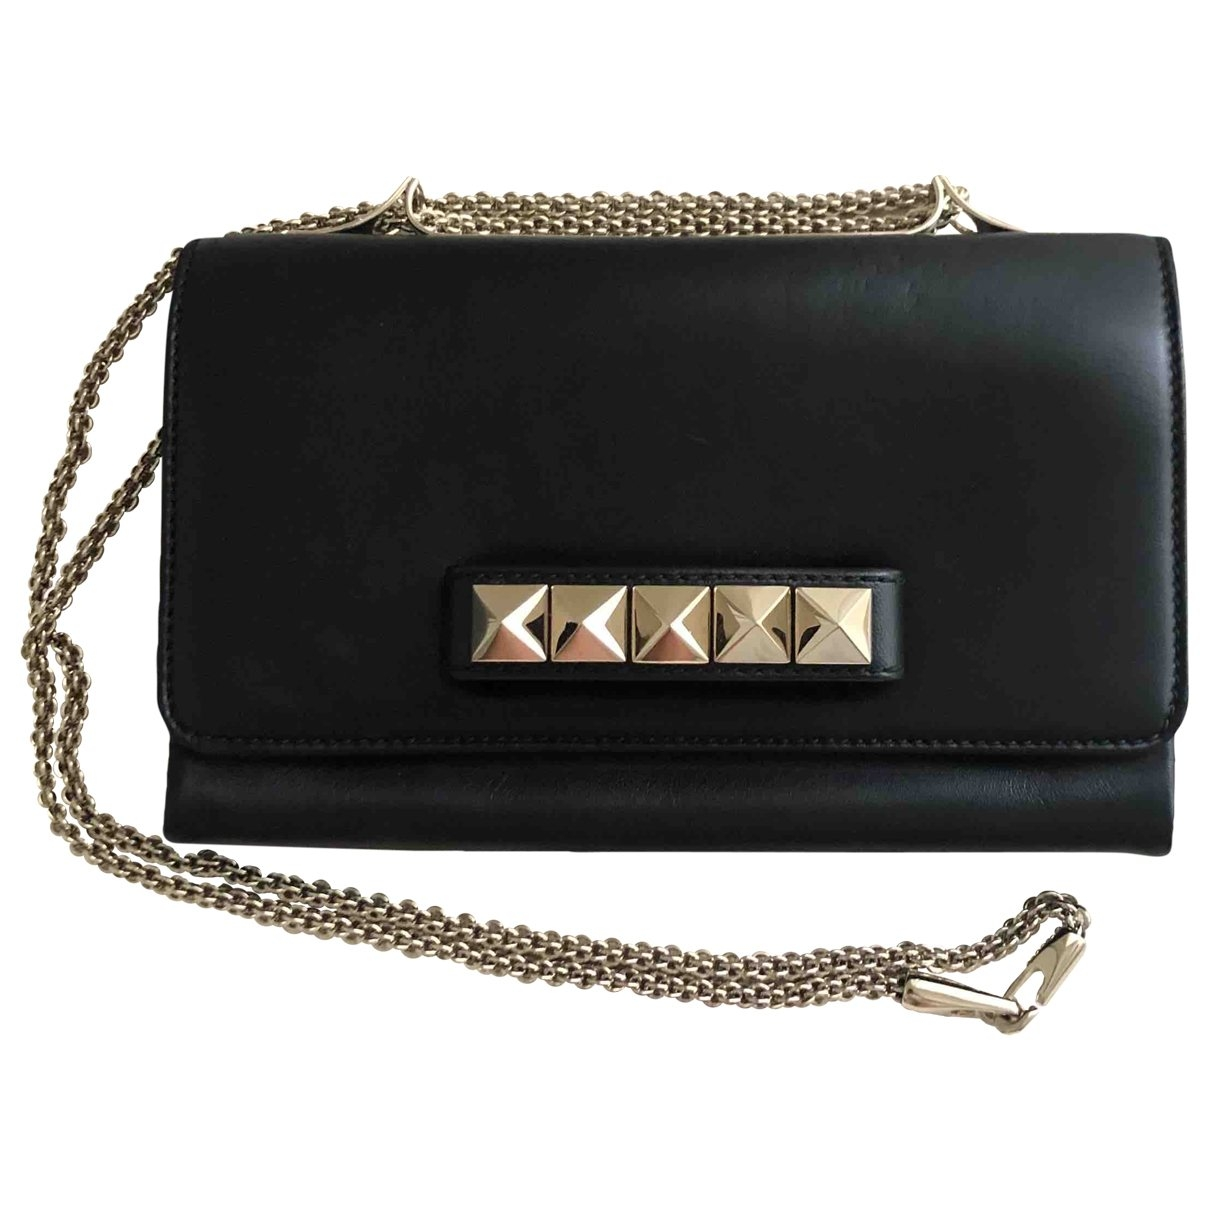 Valentino Garavani Vavavoom Black Leather handbag for Women \N